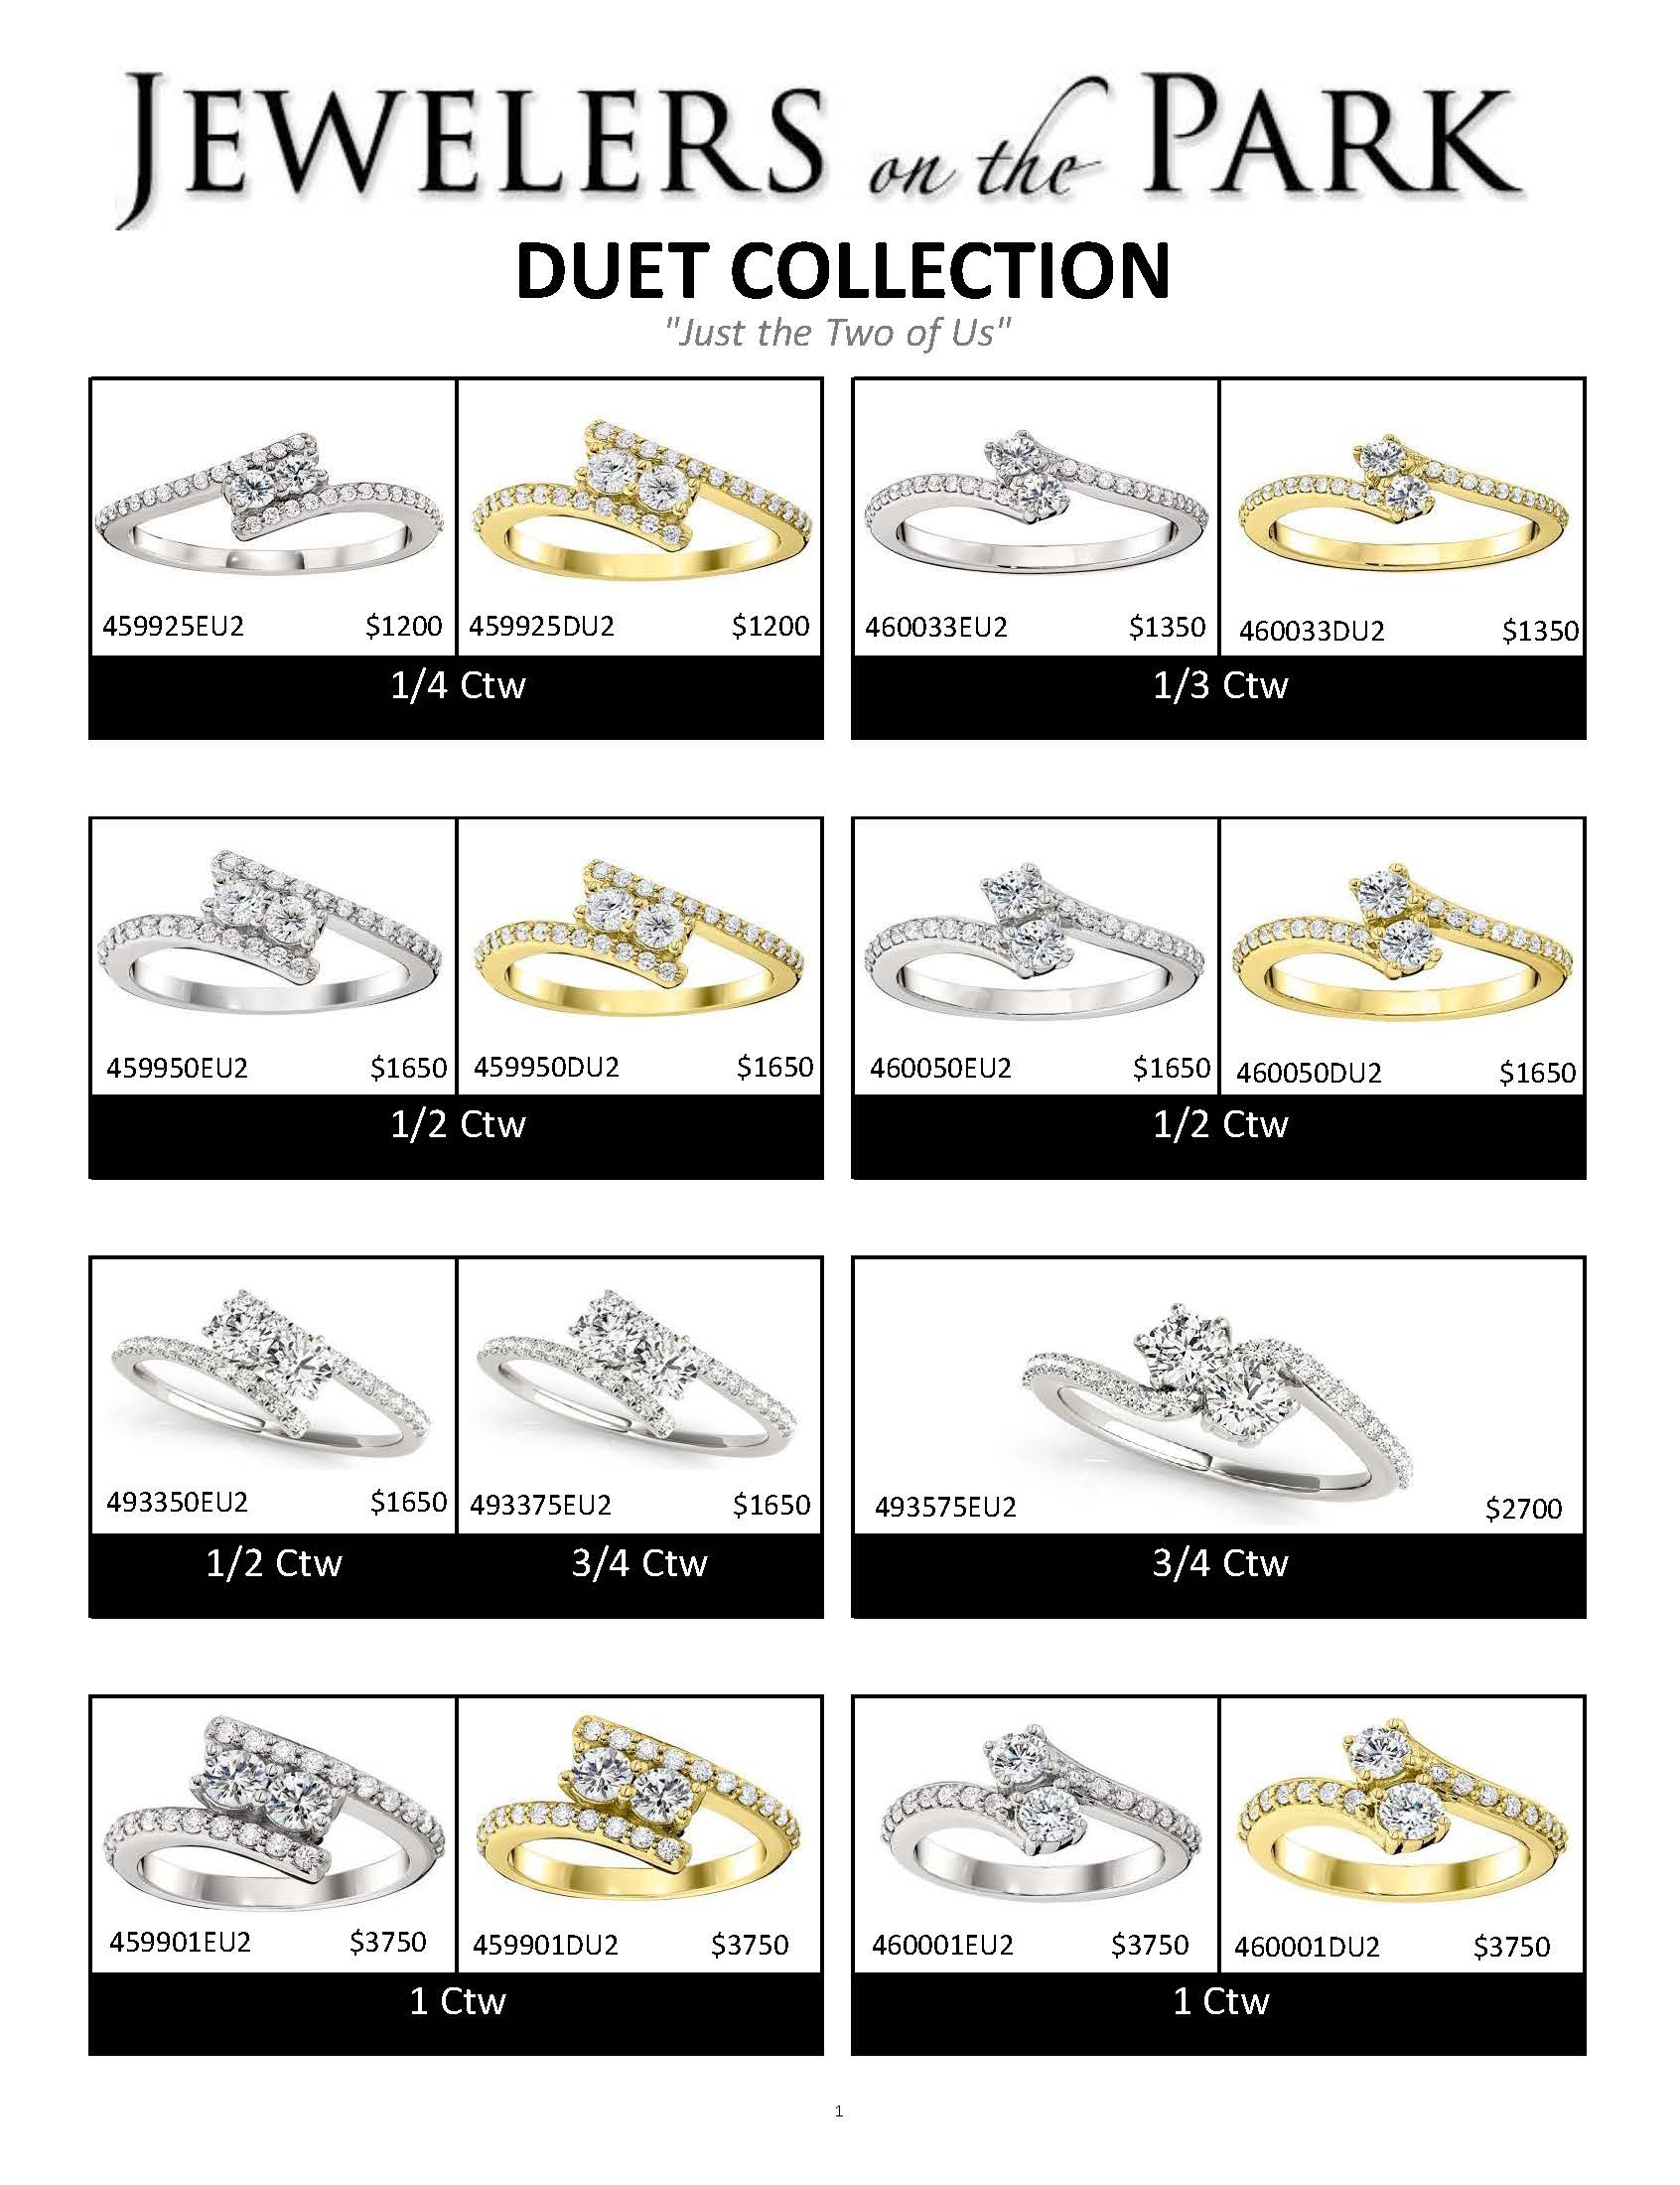 Jewelers on the park duet collection_Page_1